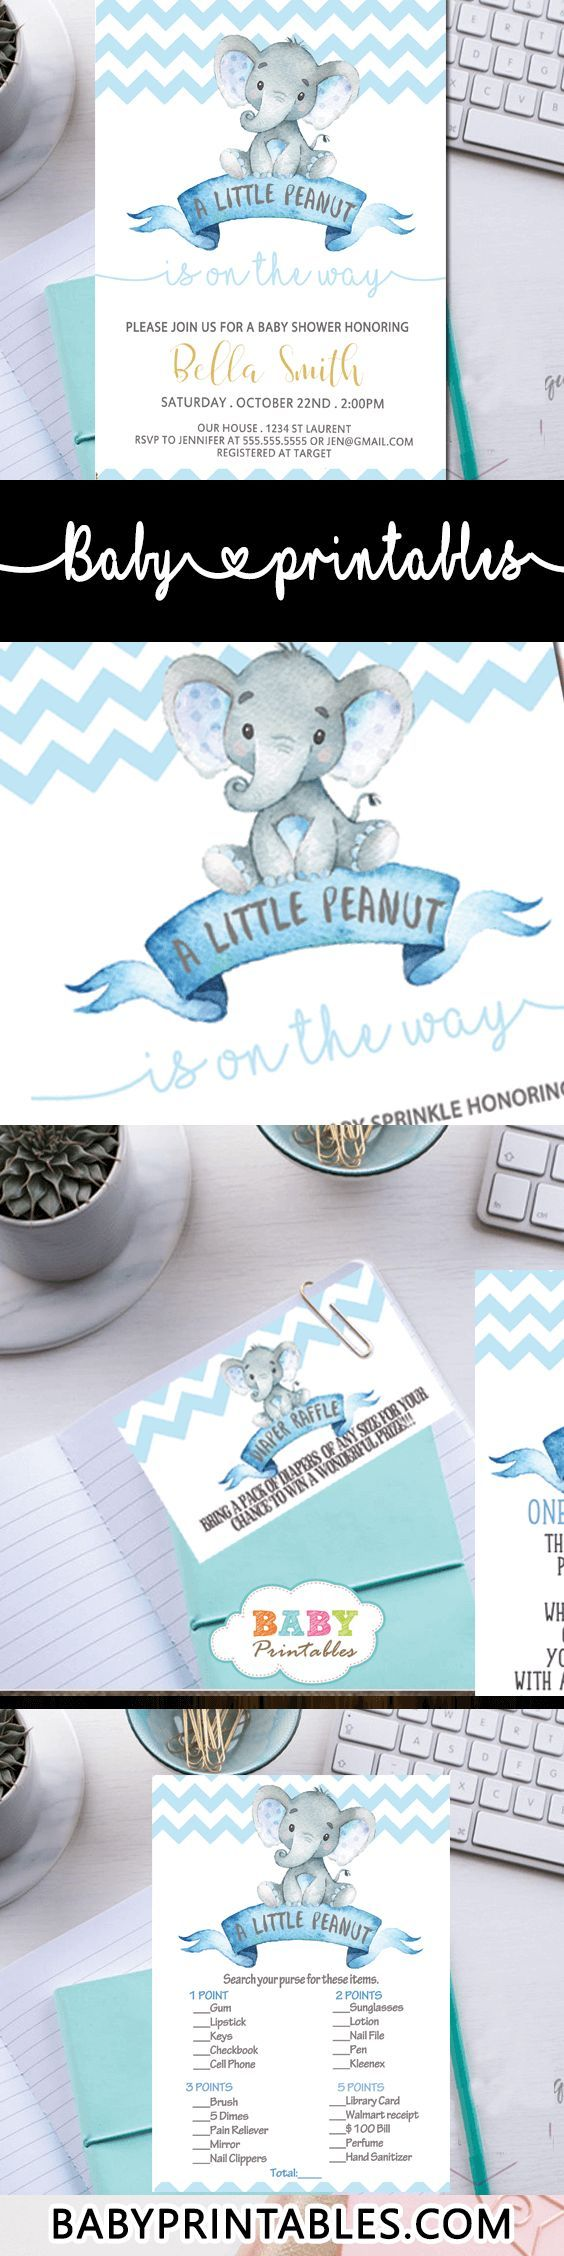 Charming elephant baby shower invitations for boy. The little peanut baby shower invitations feature an adorable baby boy elephant sitting on top of a vintage ribbon banner against a white backdrop decorated with a chevron zigzag pattern in blue. The calligraphy comes in blue and grey highlighting the honoree(s) name in yellowish gold, a beautiful color combination for an elephant baby shower theme boy. #babyshower #babyshowerinvitations #babyshowerideas4u #babyshowerparty